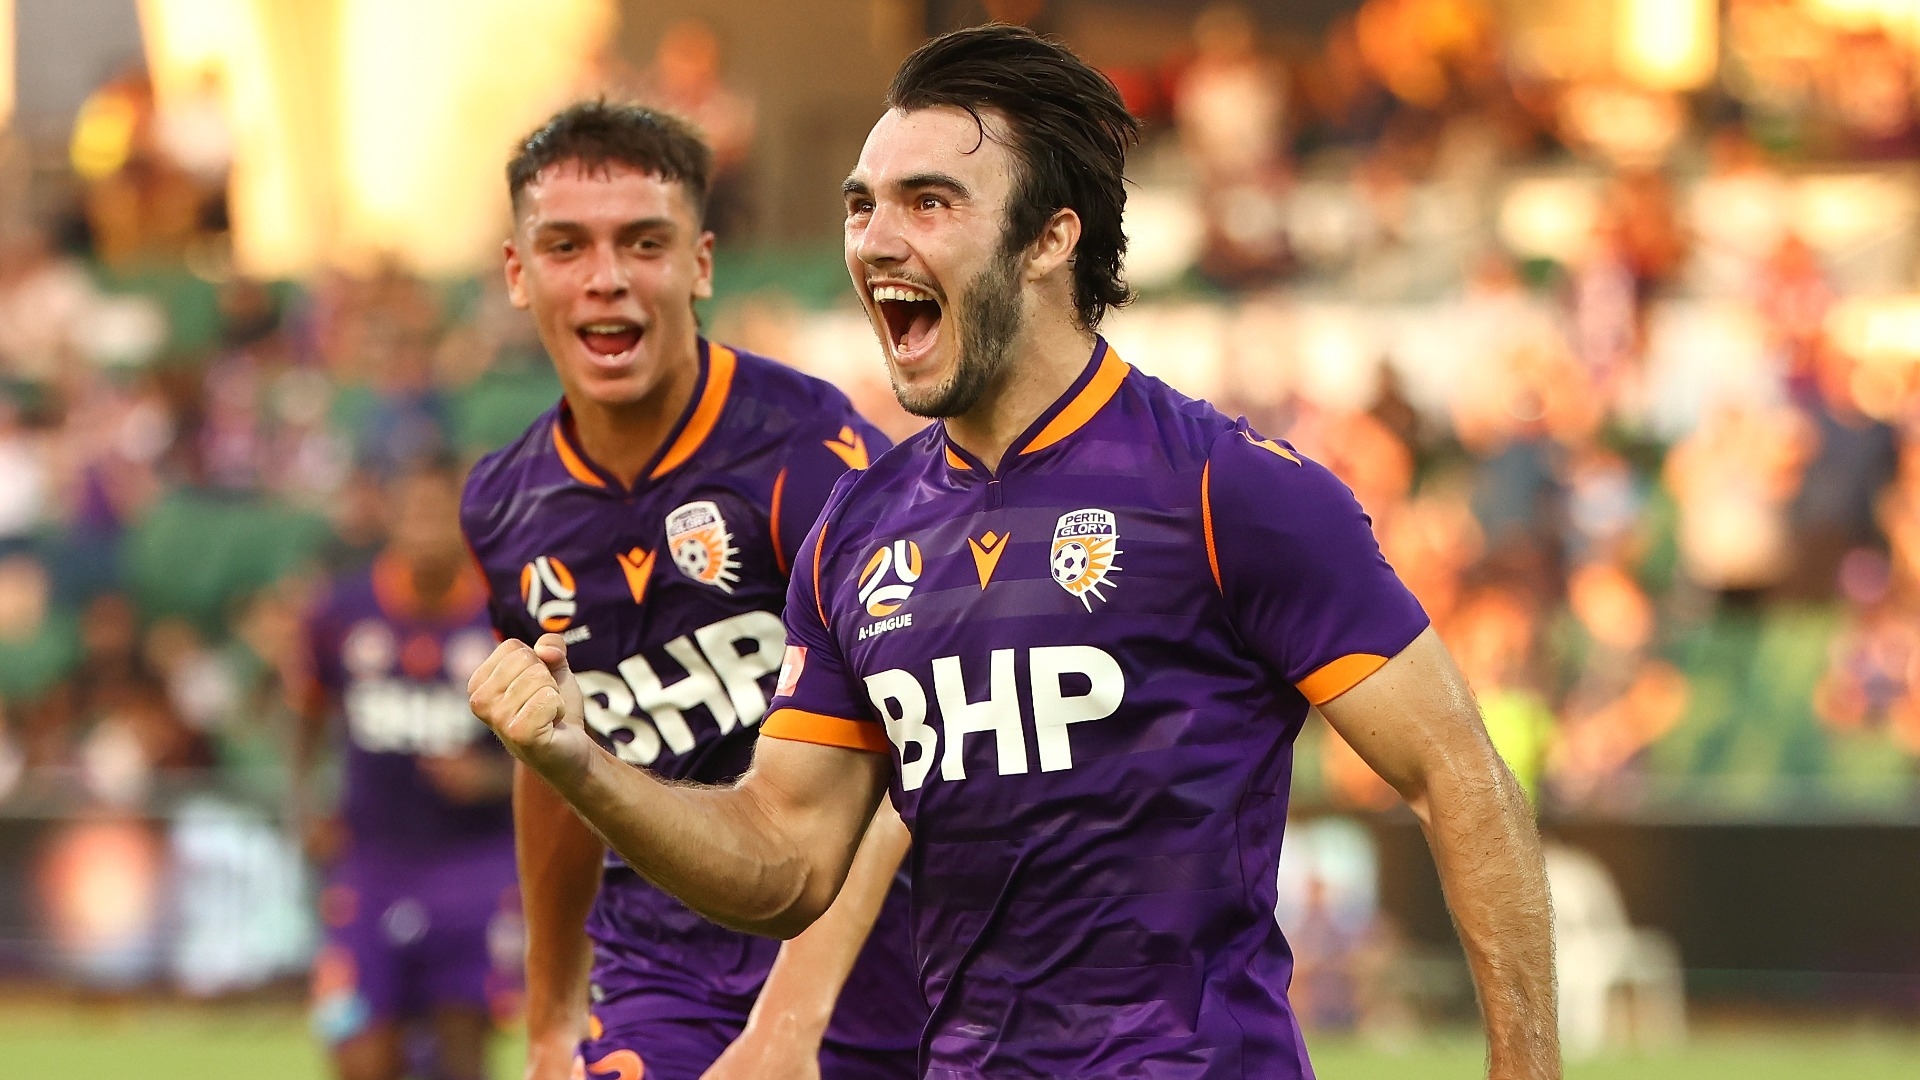 A-League: Perth Glory off to thrilling start, Newcastle Jets suffer fourth defeat in a row